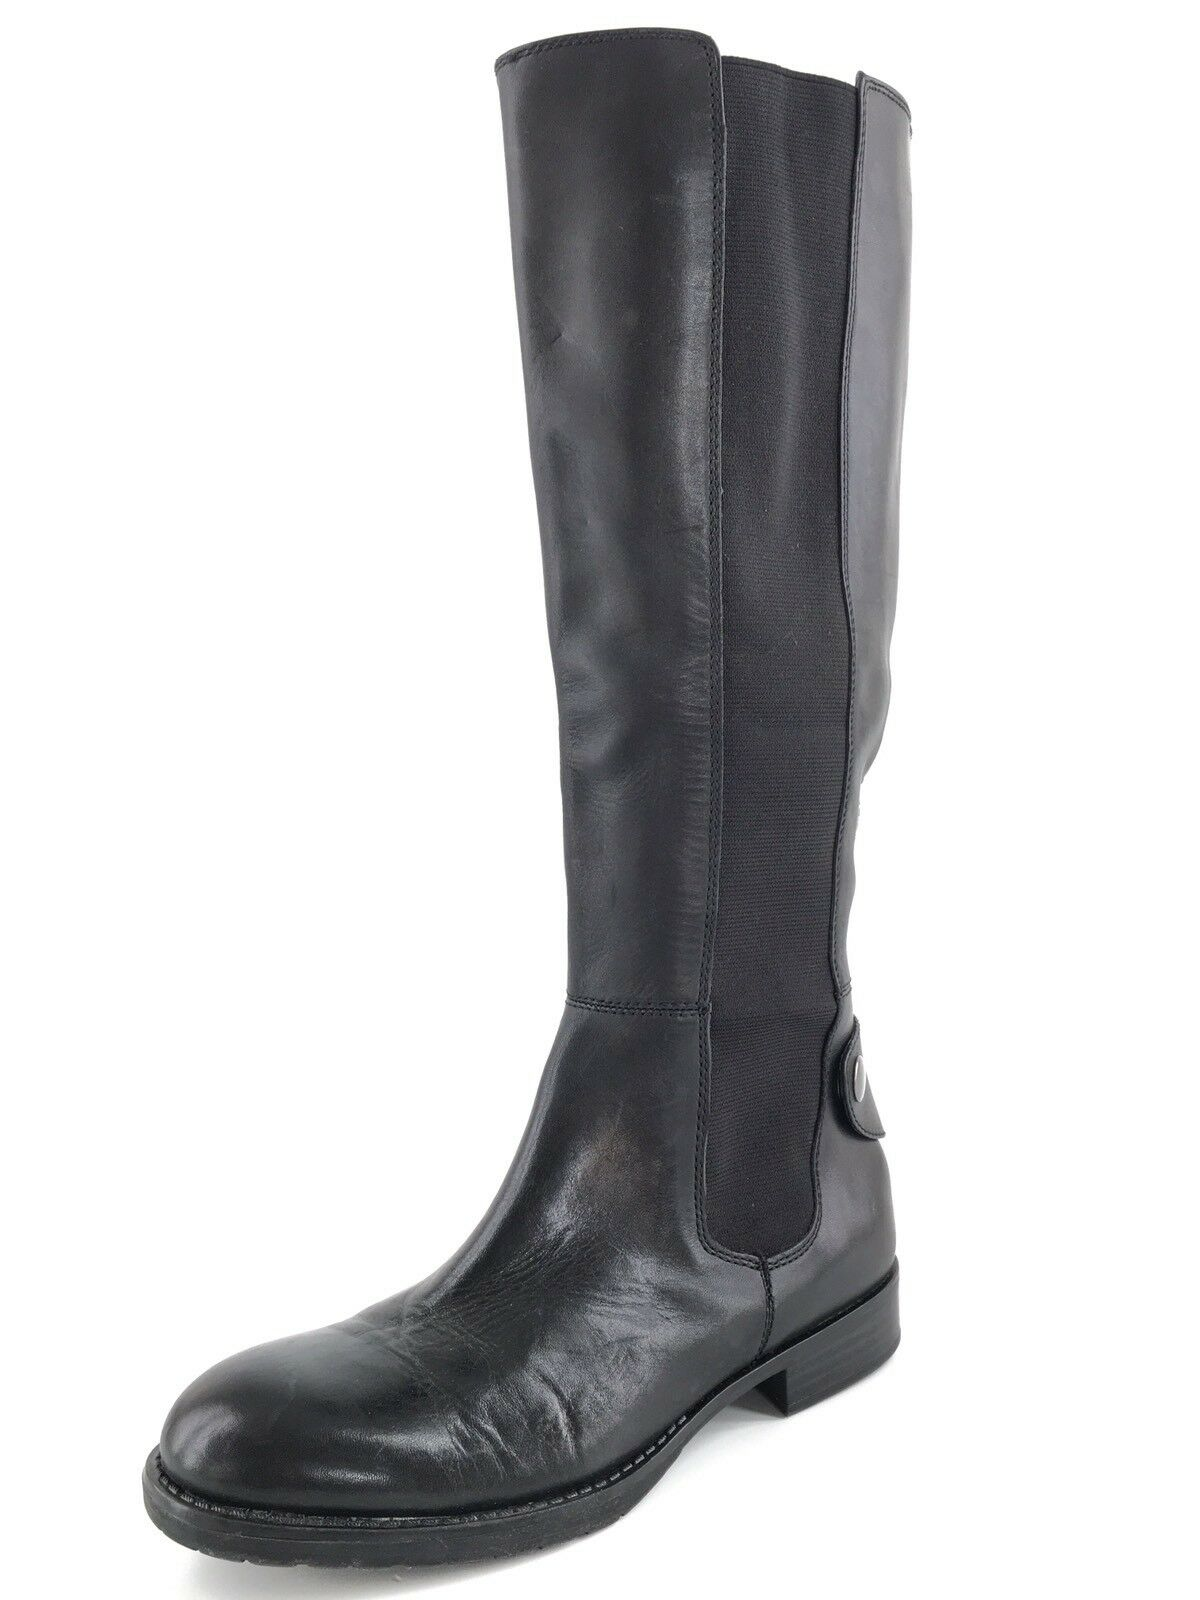 Franco Sarto Tahini Black Leather Women's Fashion Knee-High Boots Size 6 M*